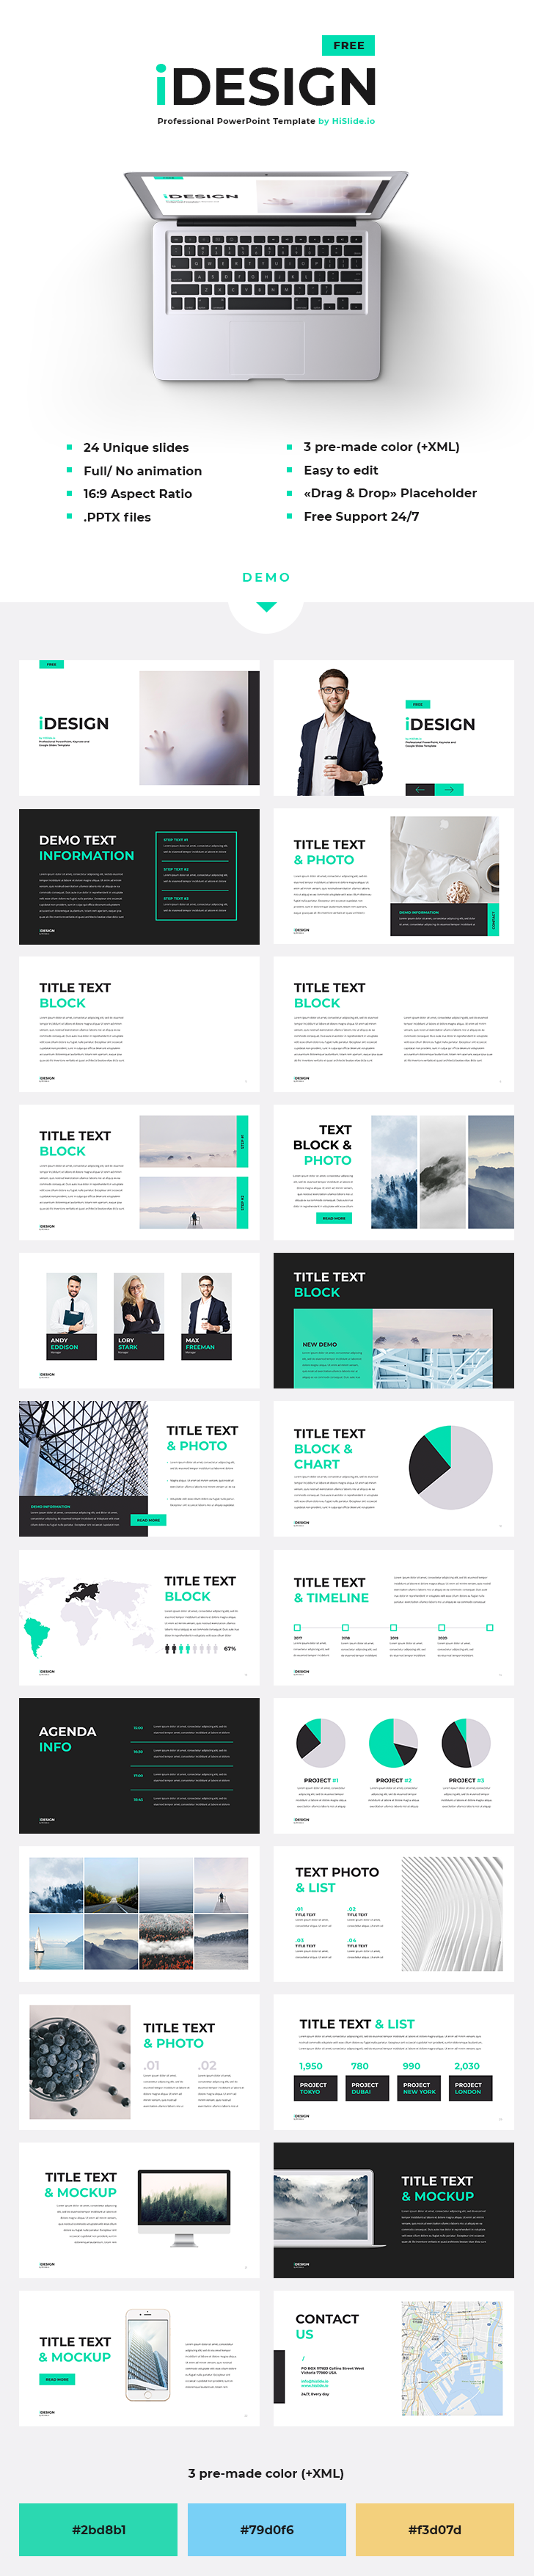 Idesign free powerpoint template 24 unique slides 3 pre made idesign free powerpoint template 24 unique slides 3 pre made color toneelgroepblik Gallery